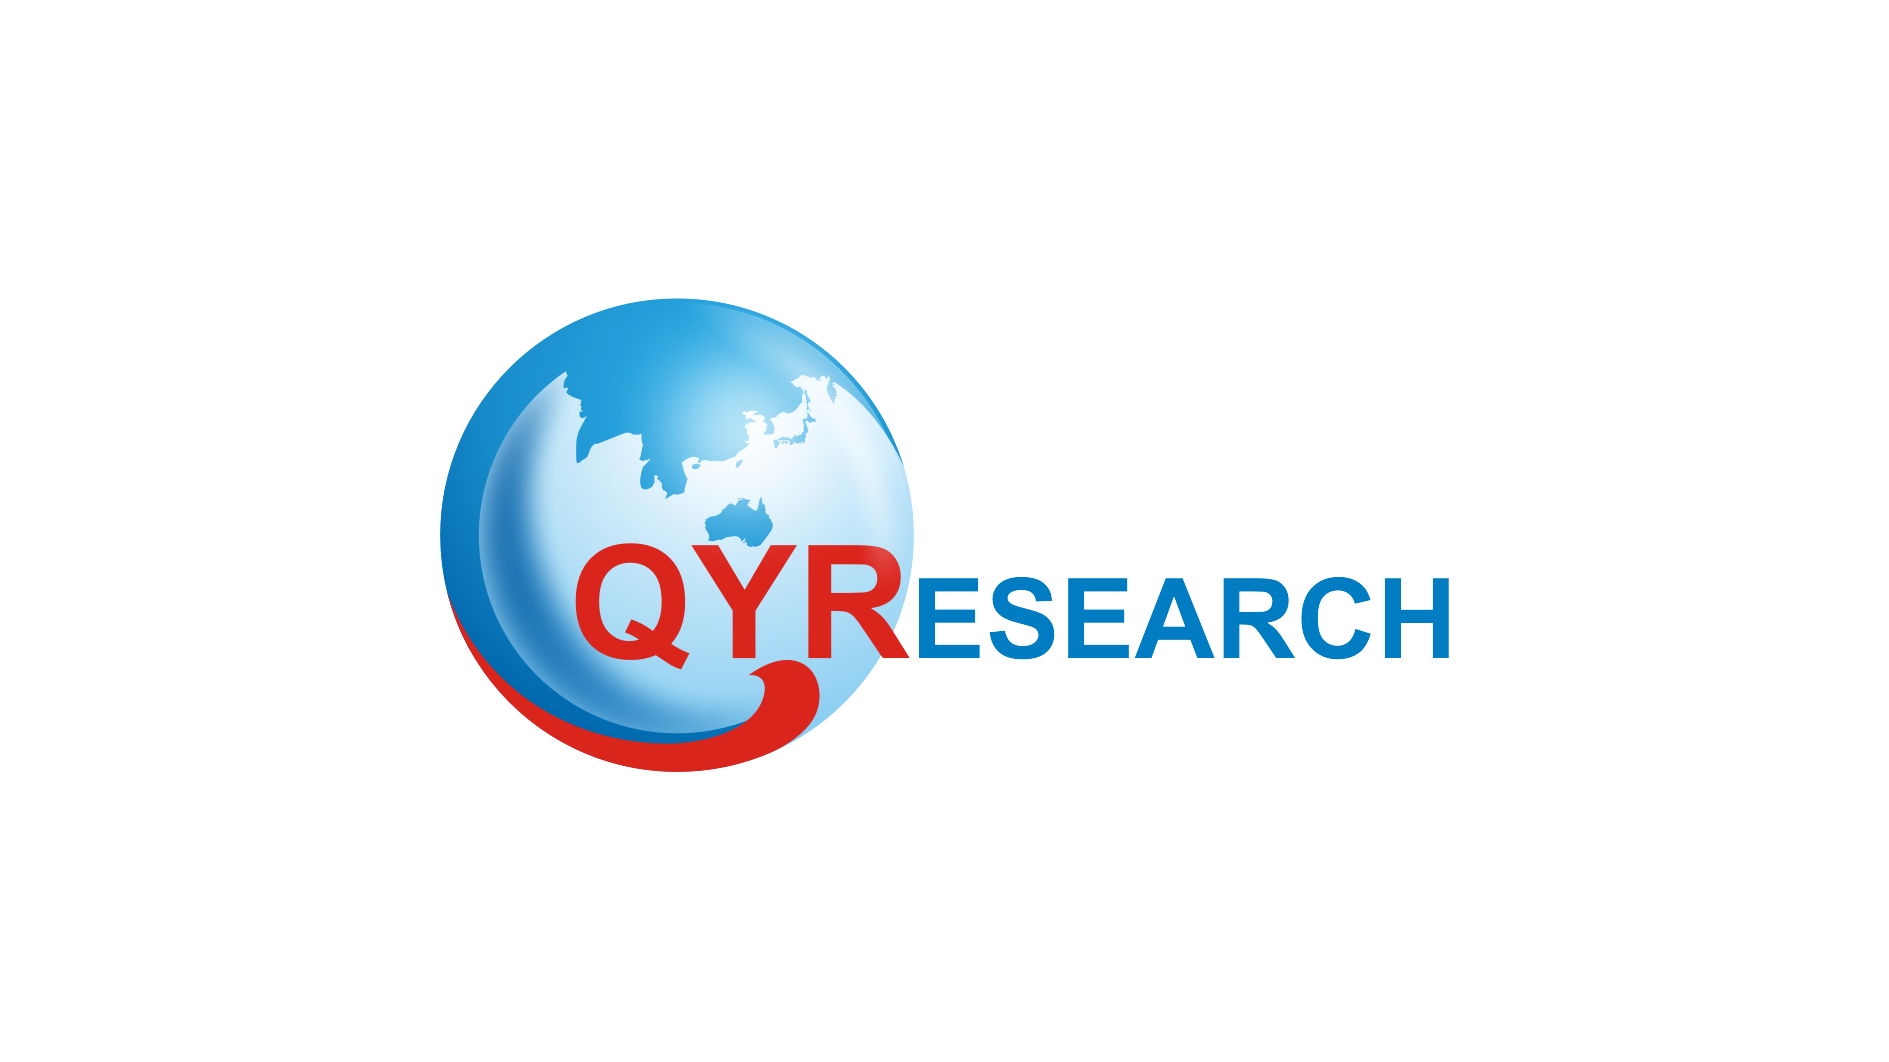 Global Organic Photovoltaics (OPV) Market Professional Survey Report 2017